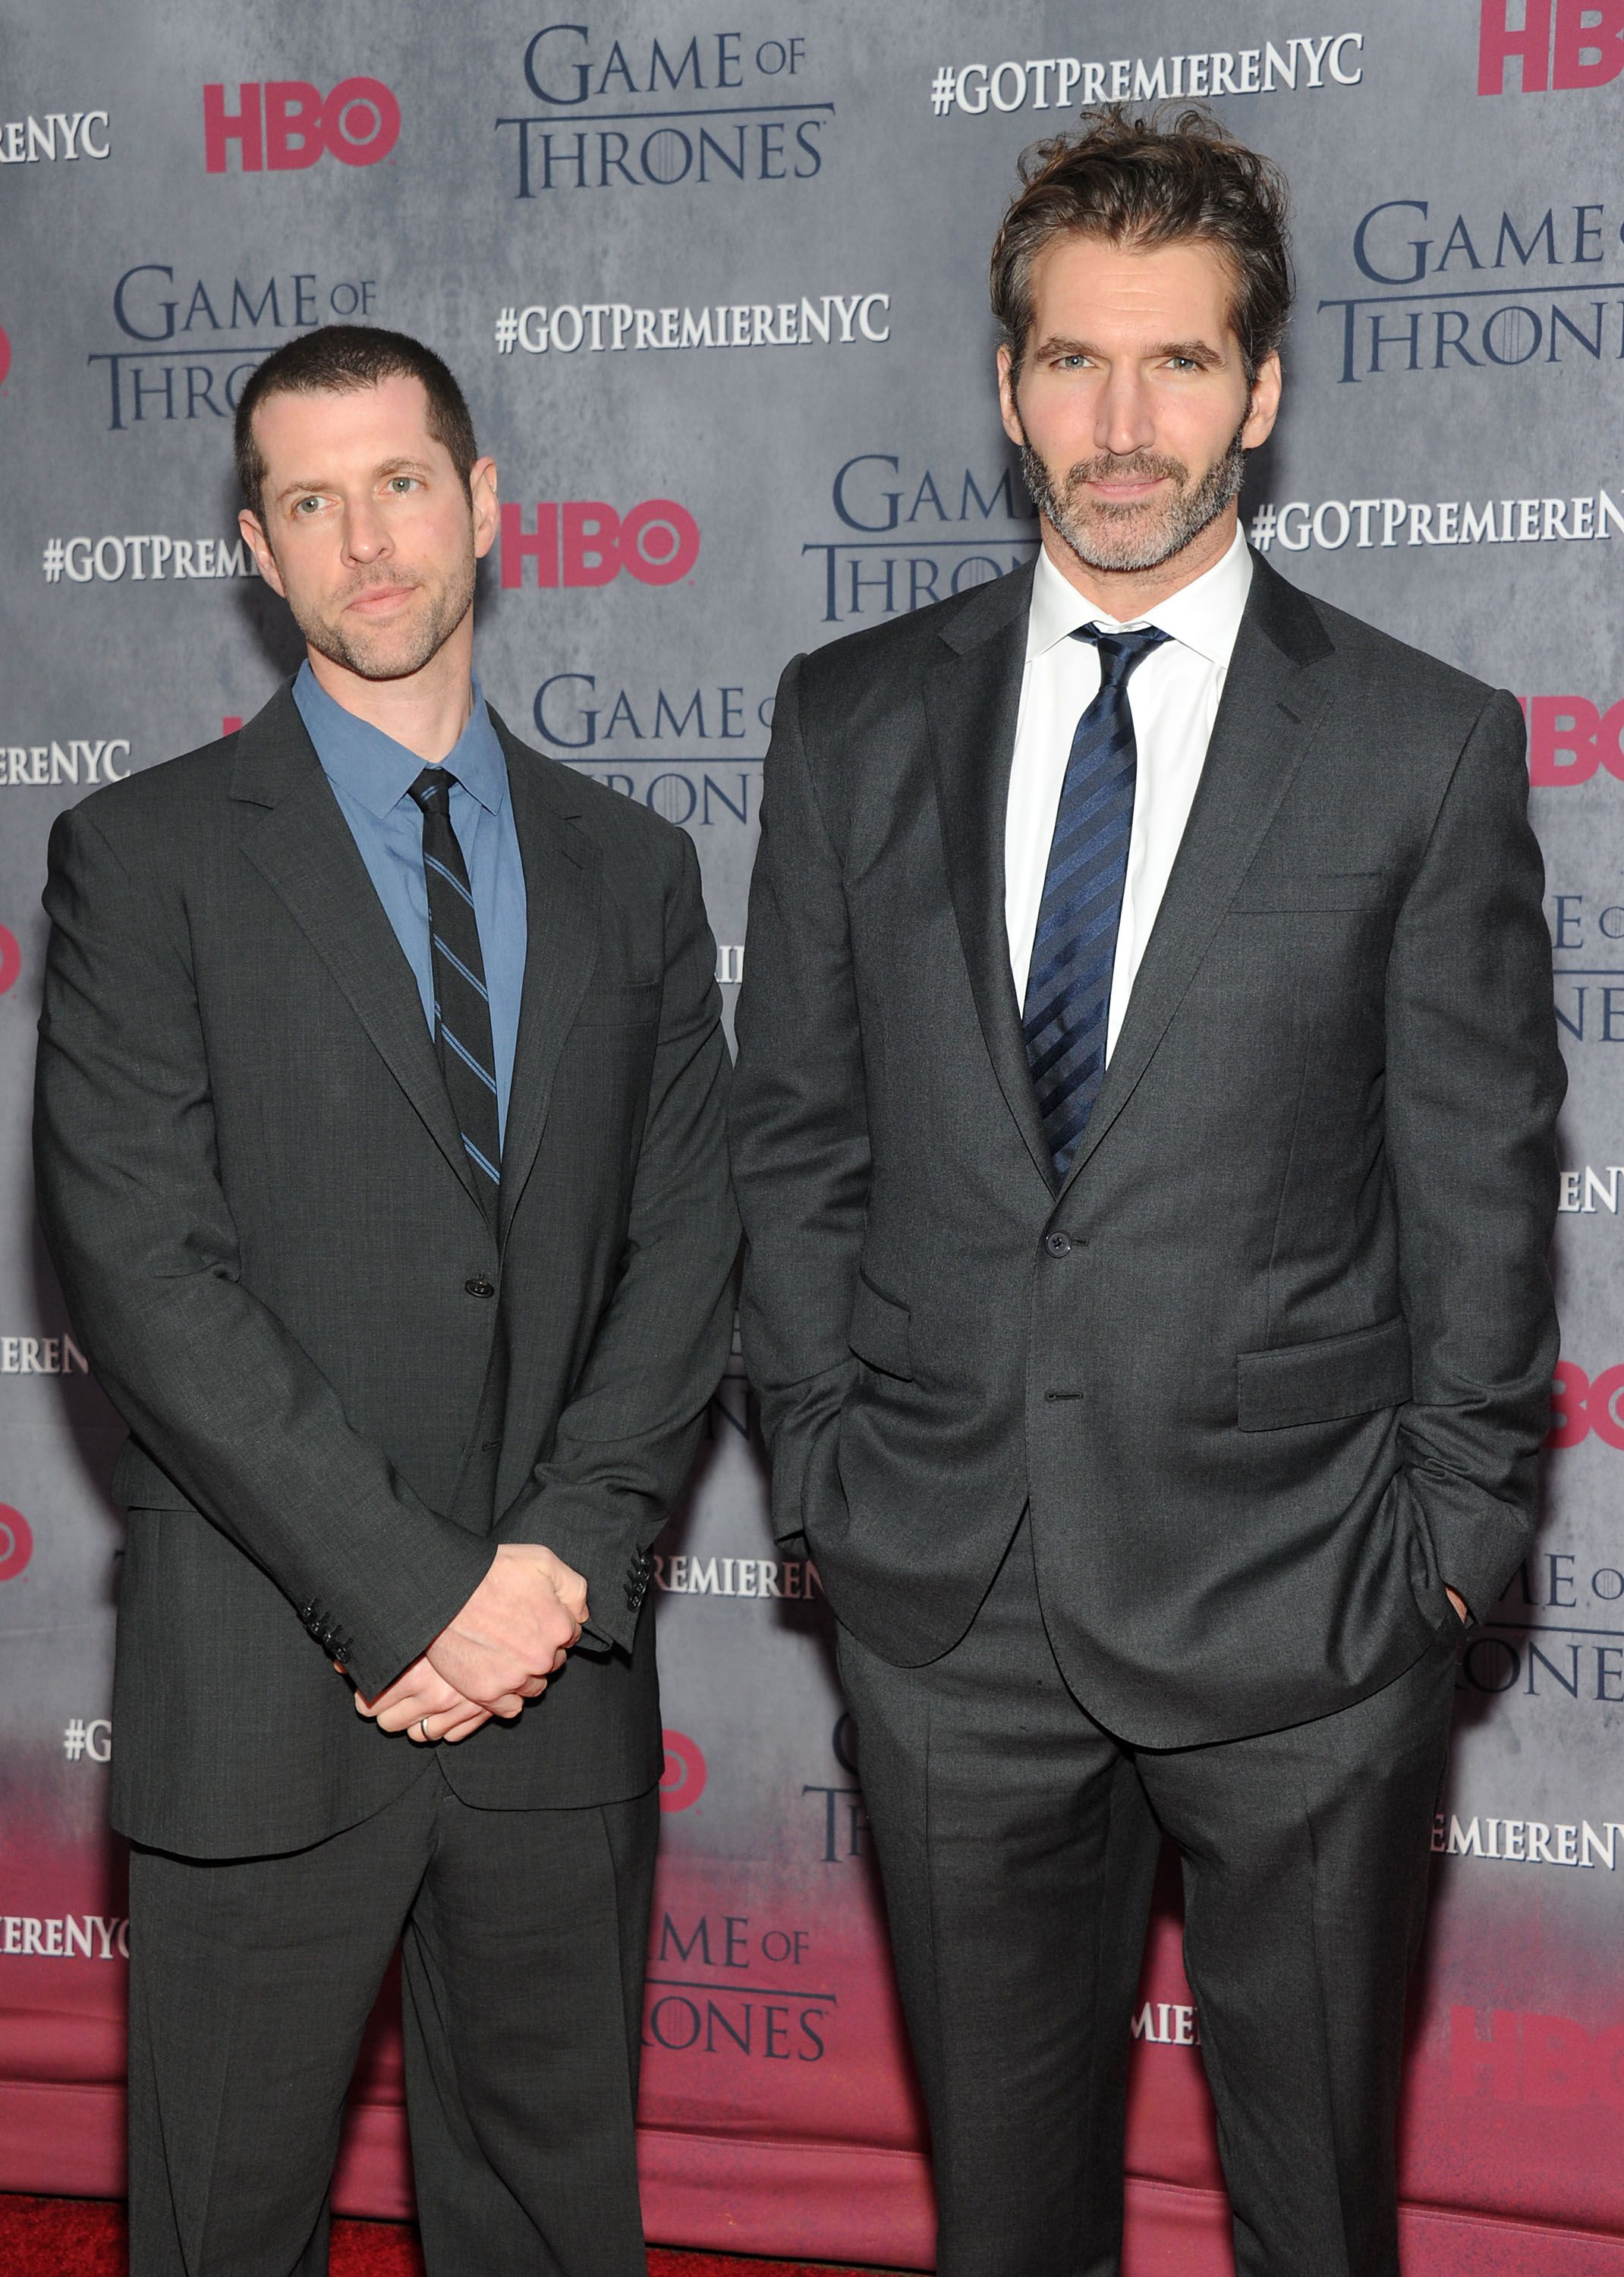 Game of Thrones creators reveal their newest project, and it involves another hugely famous author